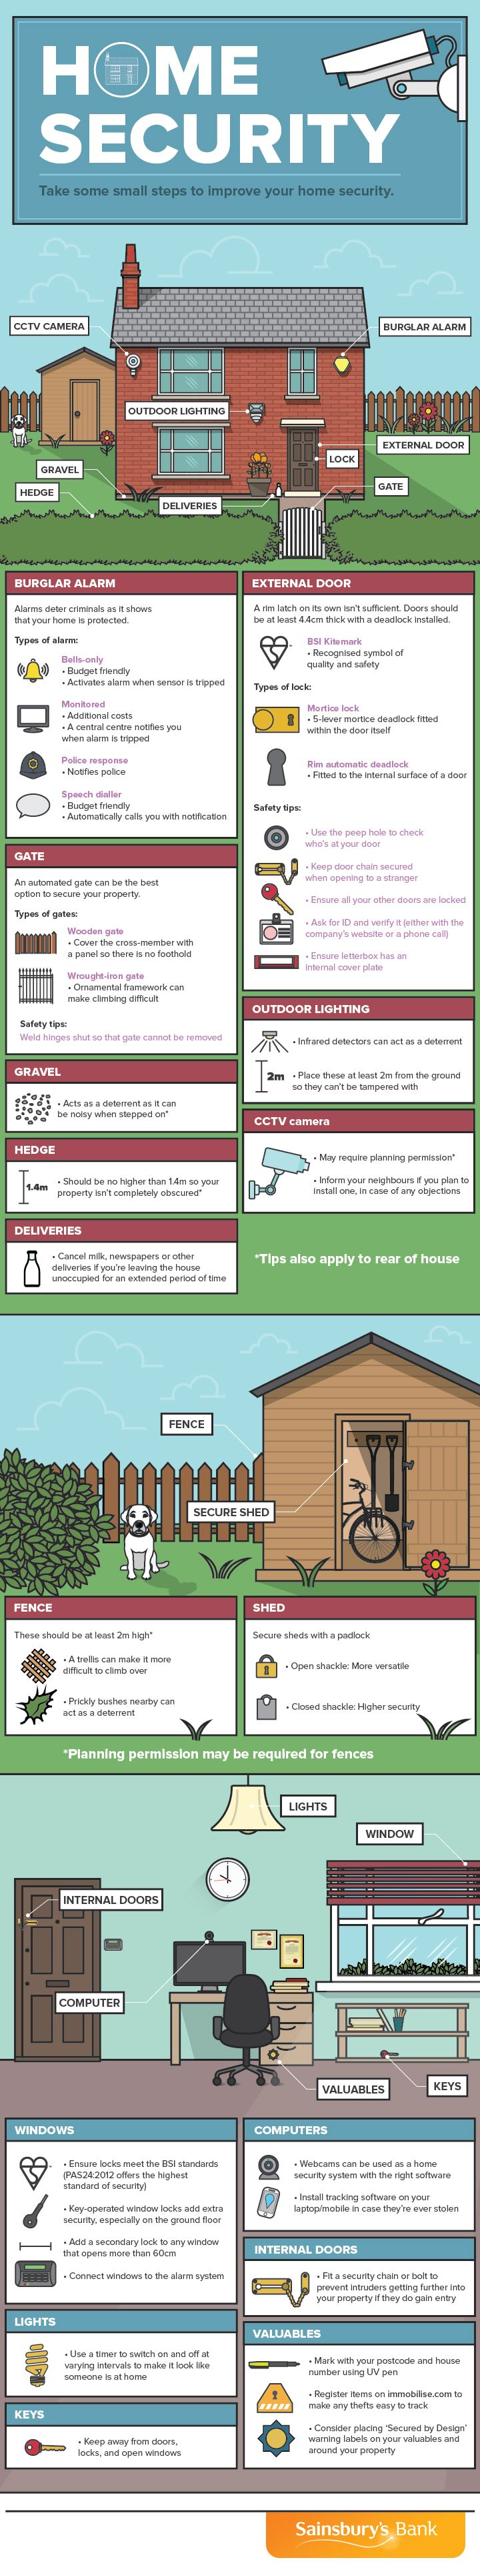 Take Some Small Steps to Improve Your Home Security #infographic